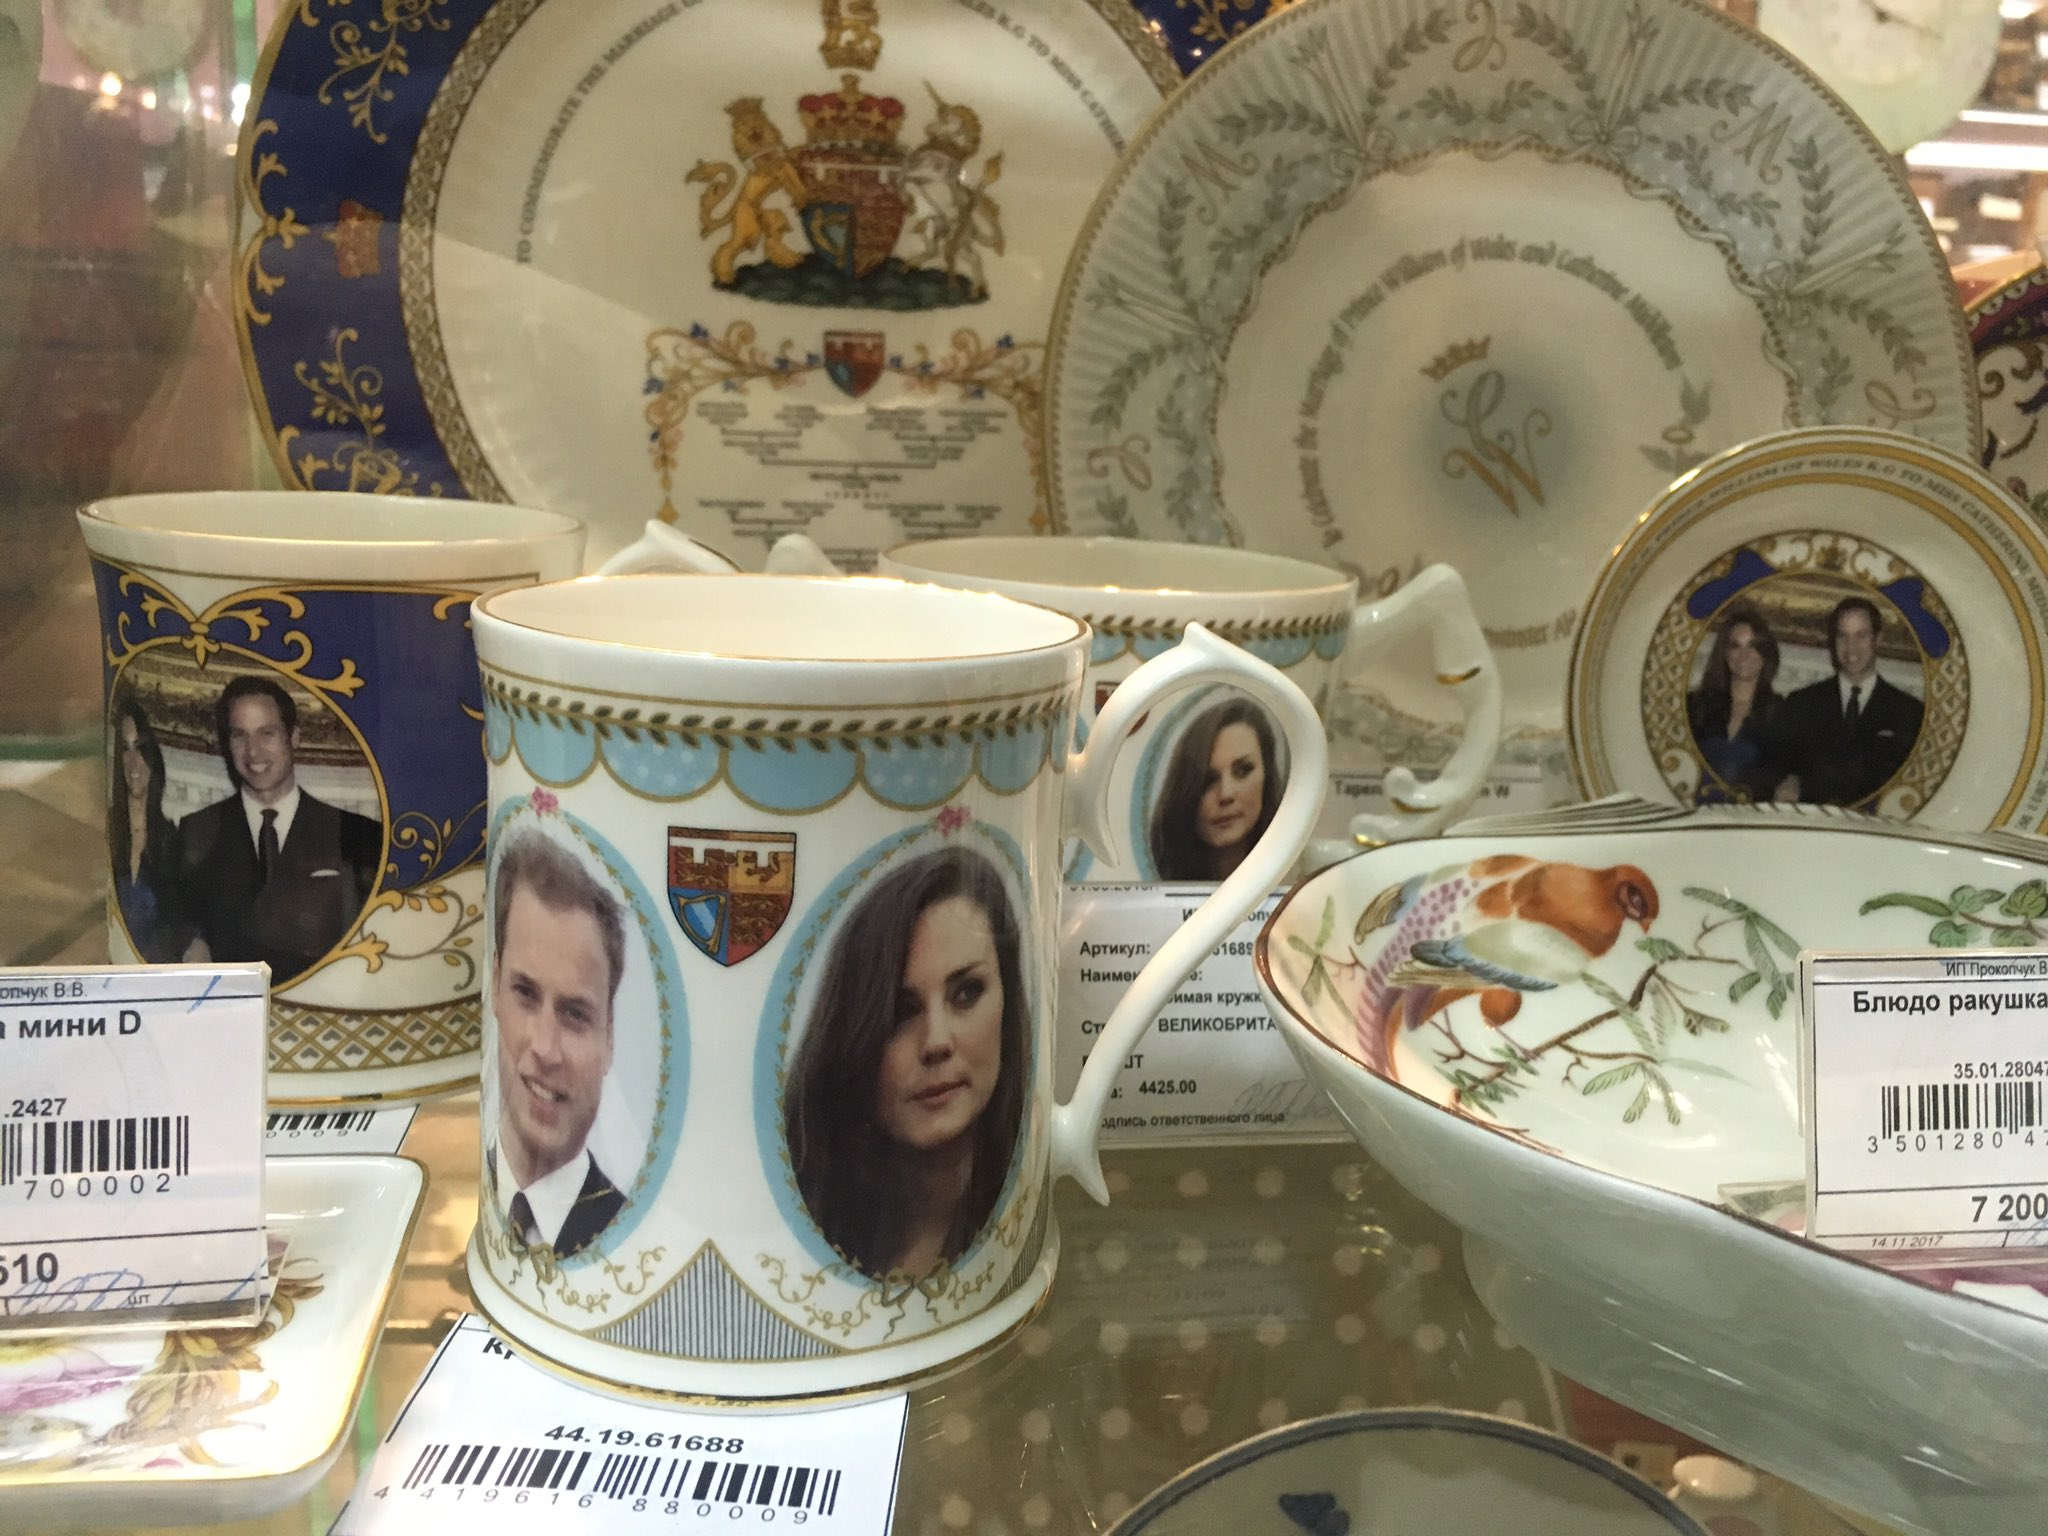 Souvenir from Russia: Kate & Wills cups & saucers on sale in Moscow. https://t.co/fJ8UjZ4Yn2